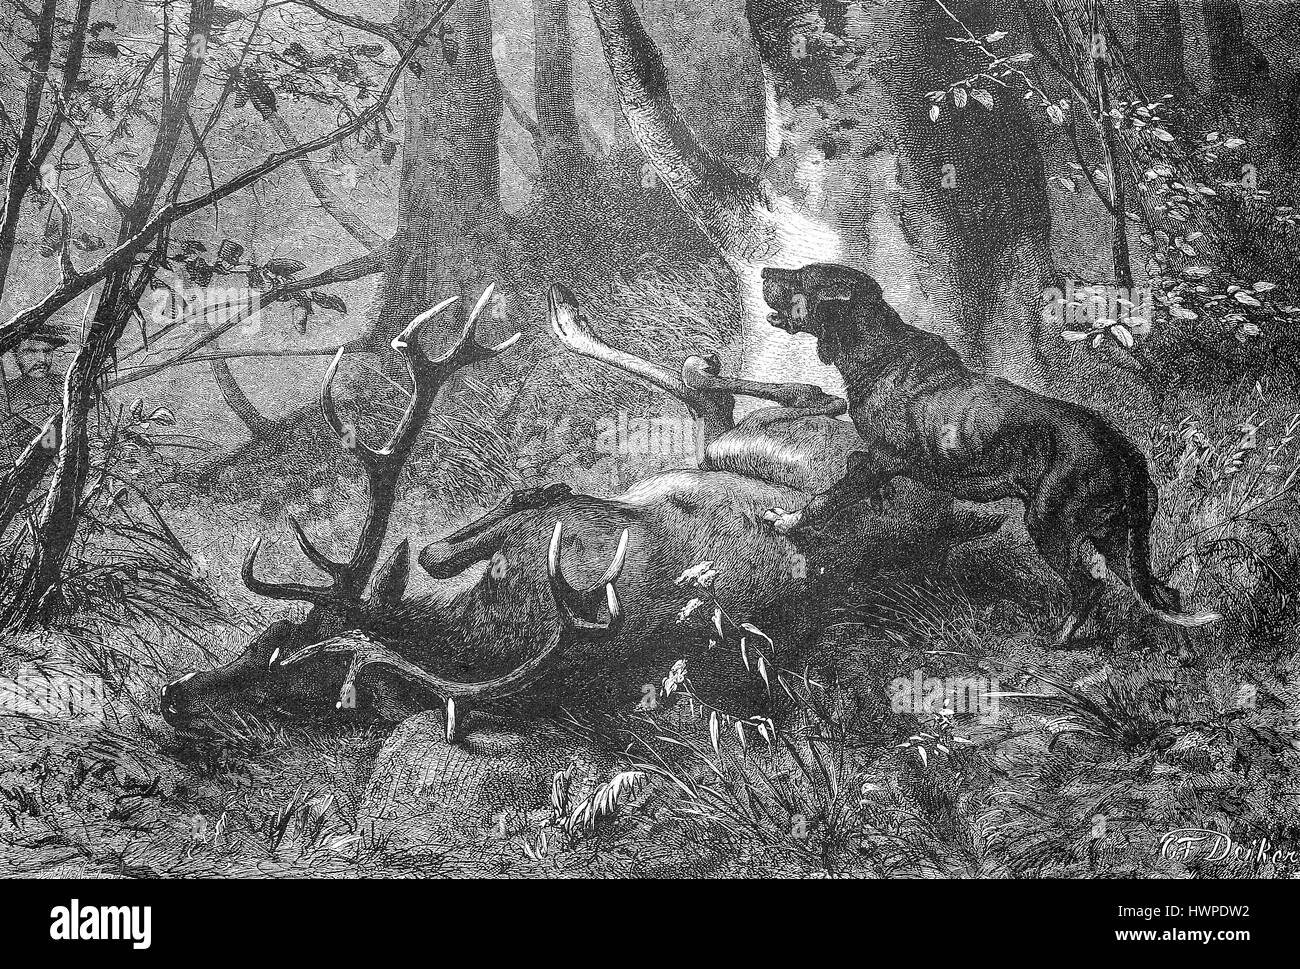 Hunting dog at a death deer in the wood, Reproduction of an original woodcut from the year 1882, digital improved - Stock Image